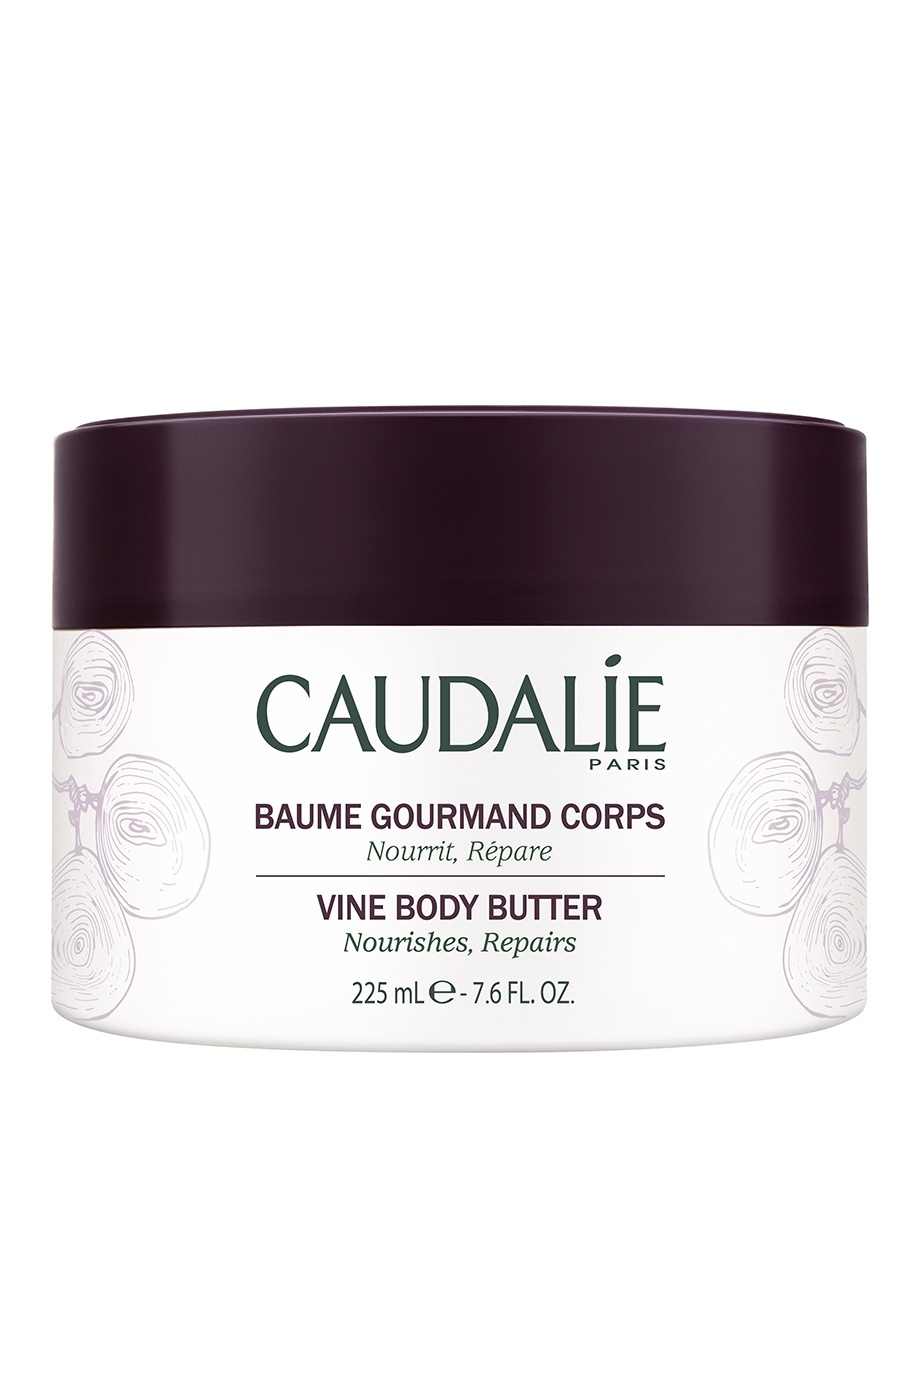 Бальзам для тела Vine Body Butter 225ml Caudalie (фото)